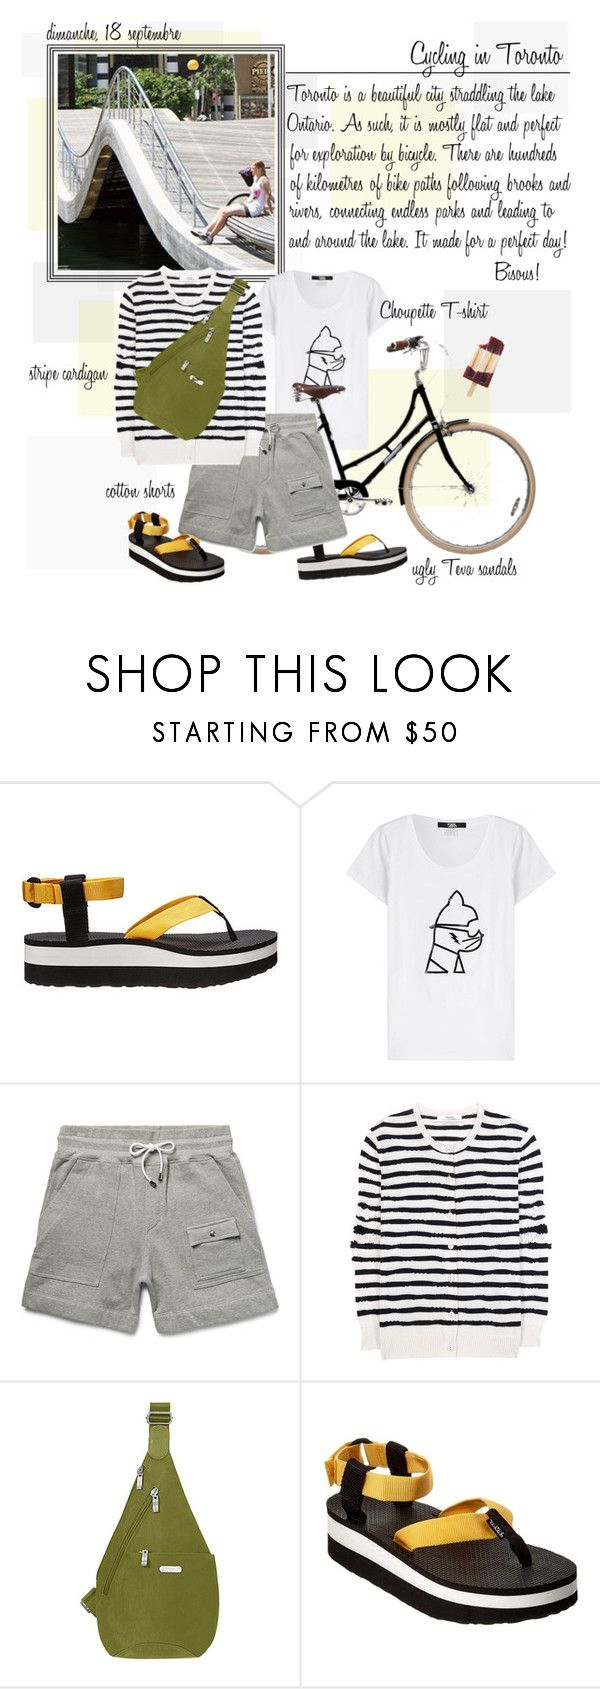 """""""Mon Style № 100 - September 18, 2016"""" by mon-style-diary ❤ liked on Polyvore featuring Teva, Karl Lagerfeld, Michael Bastian, Barrie, Baggallini, uglyshoes and tevas"""